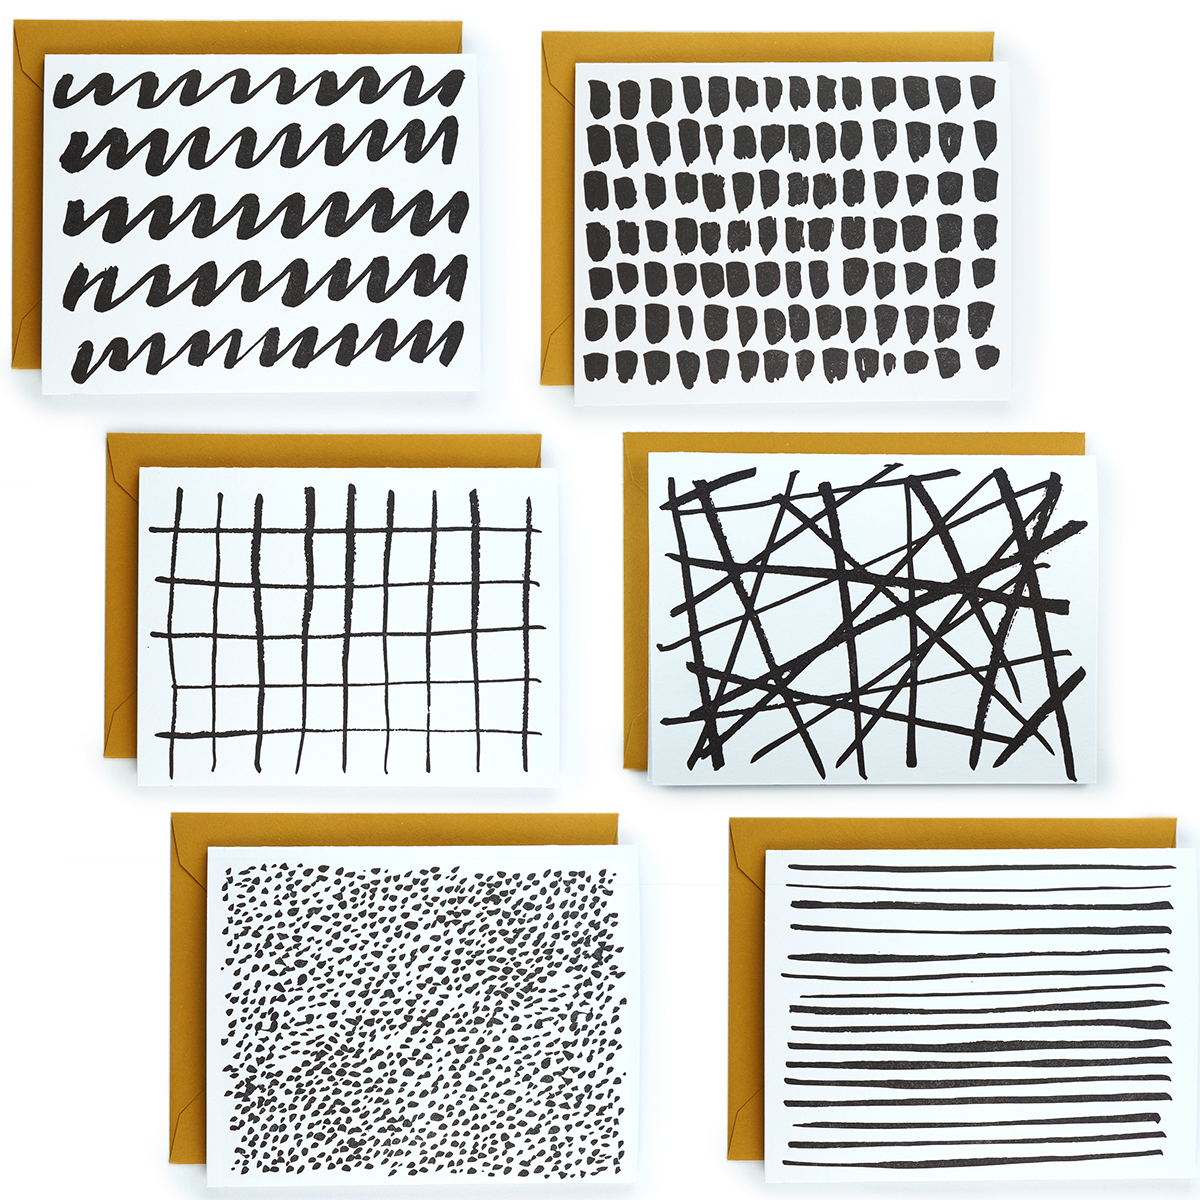 pattern,pen and ink,drawn,draw,sketchy pattern,black and white